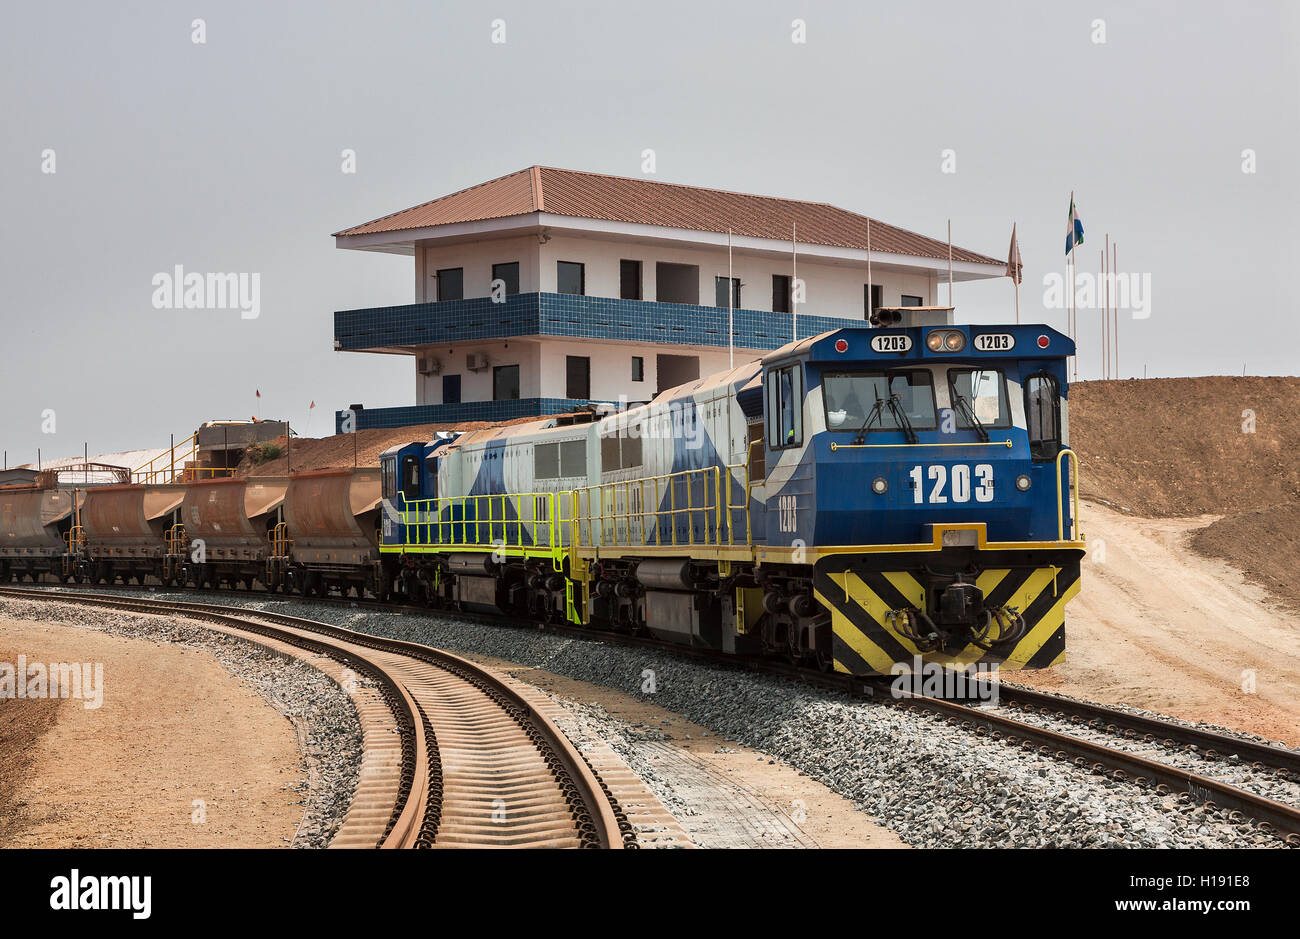 Port operations for managing and transporting iron ore. Grinwell locomotive and ore train on rail train line loop - Stock Image